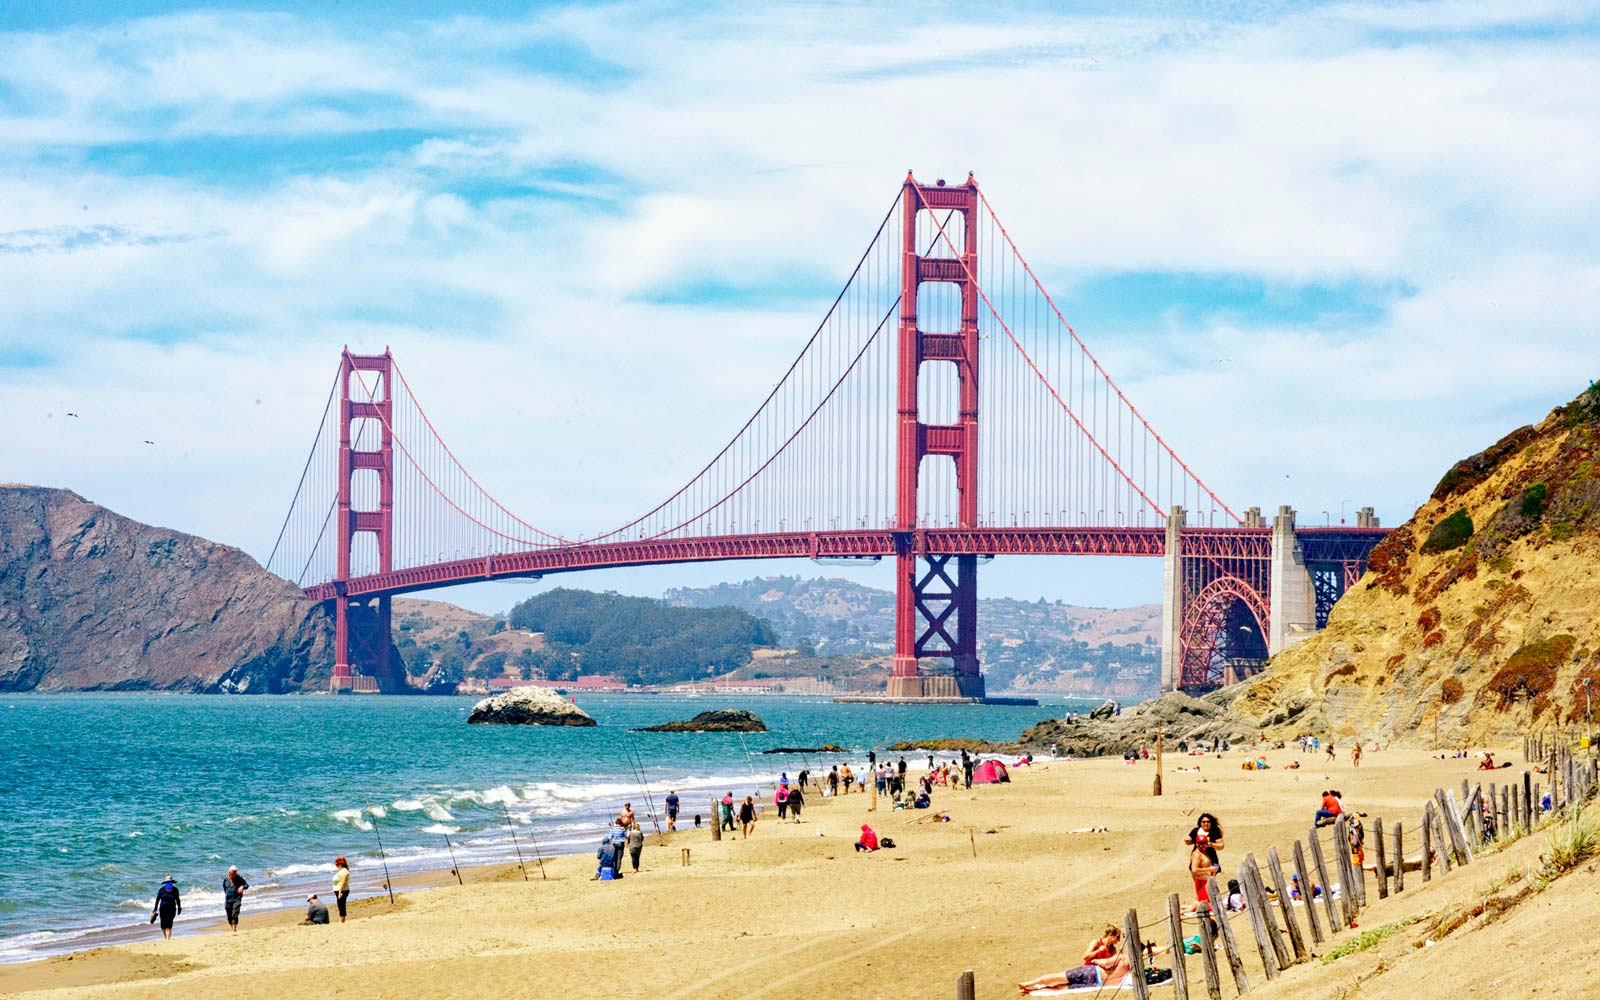 3 Ways to Spend a Day at Baker Beach